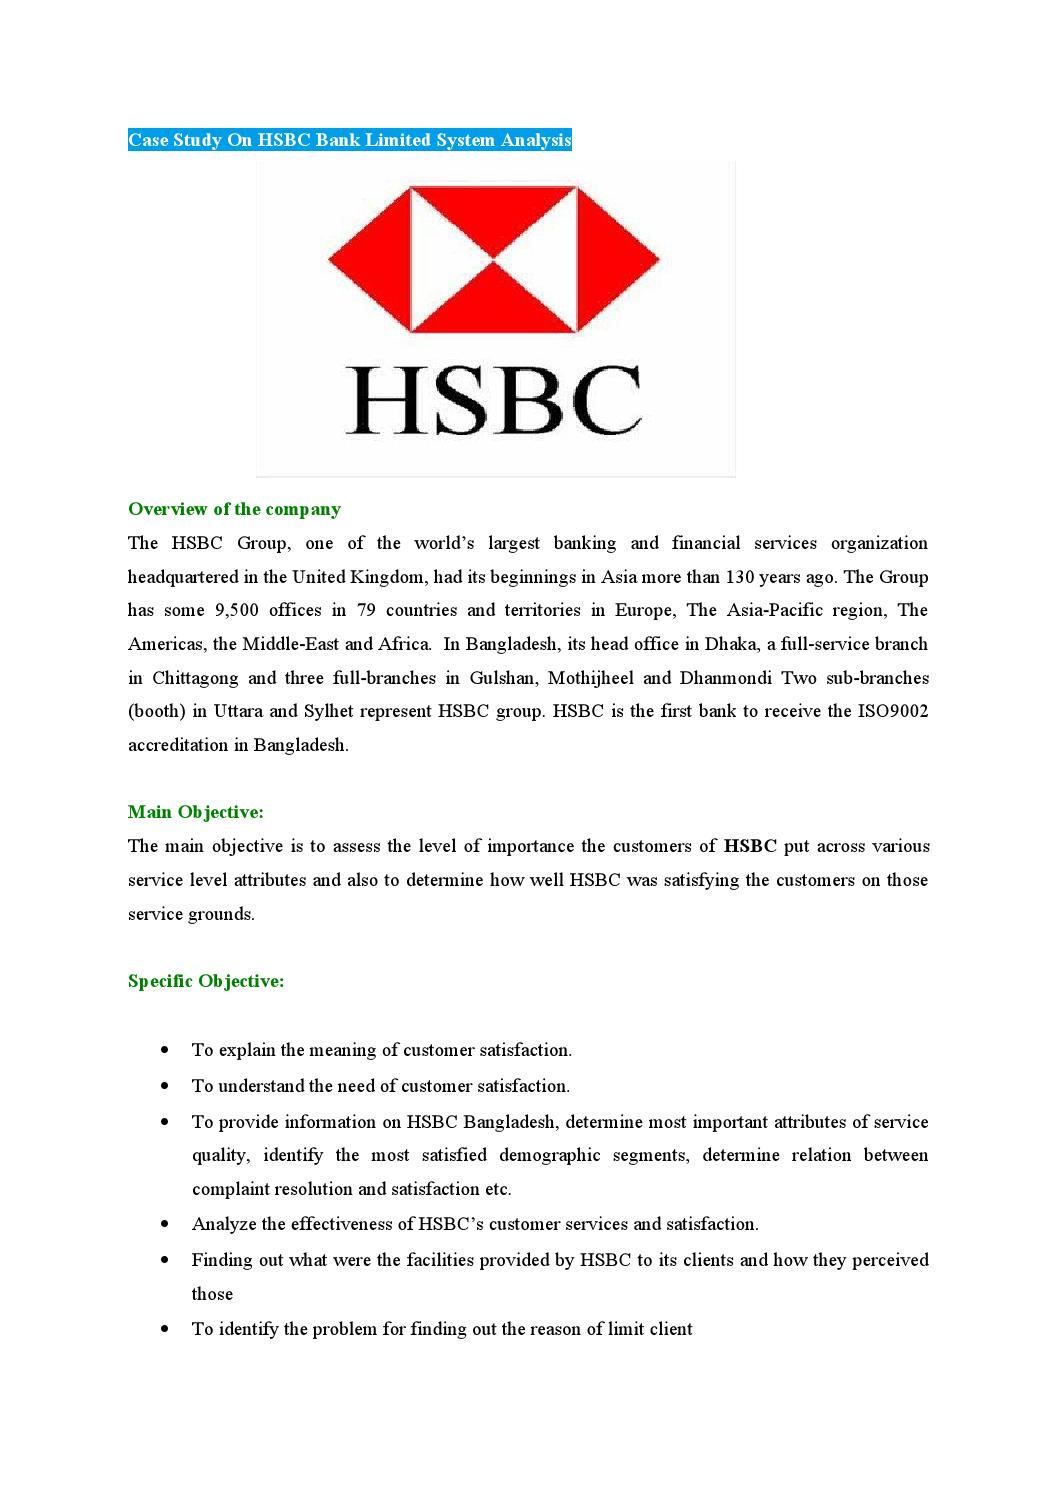 Case study on hsbc bank limited system analysis by Md Papon